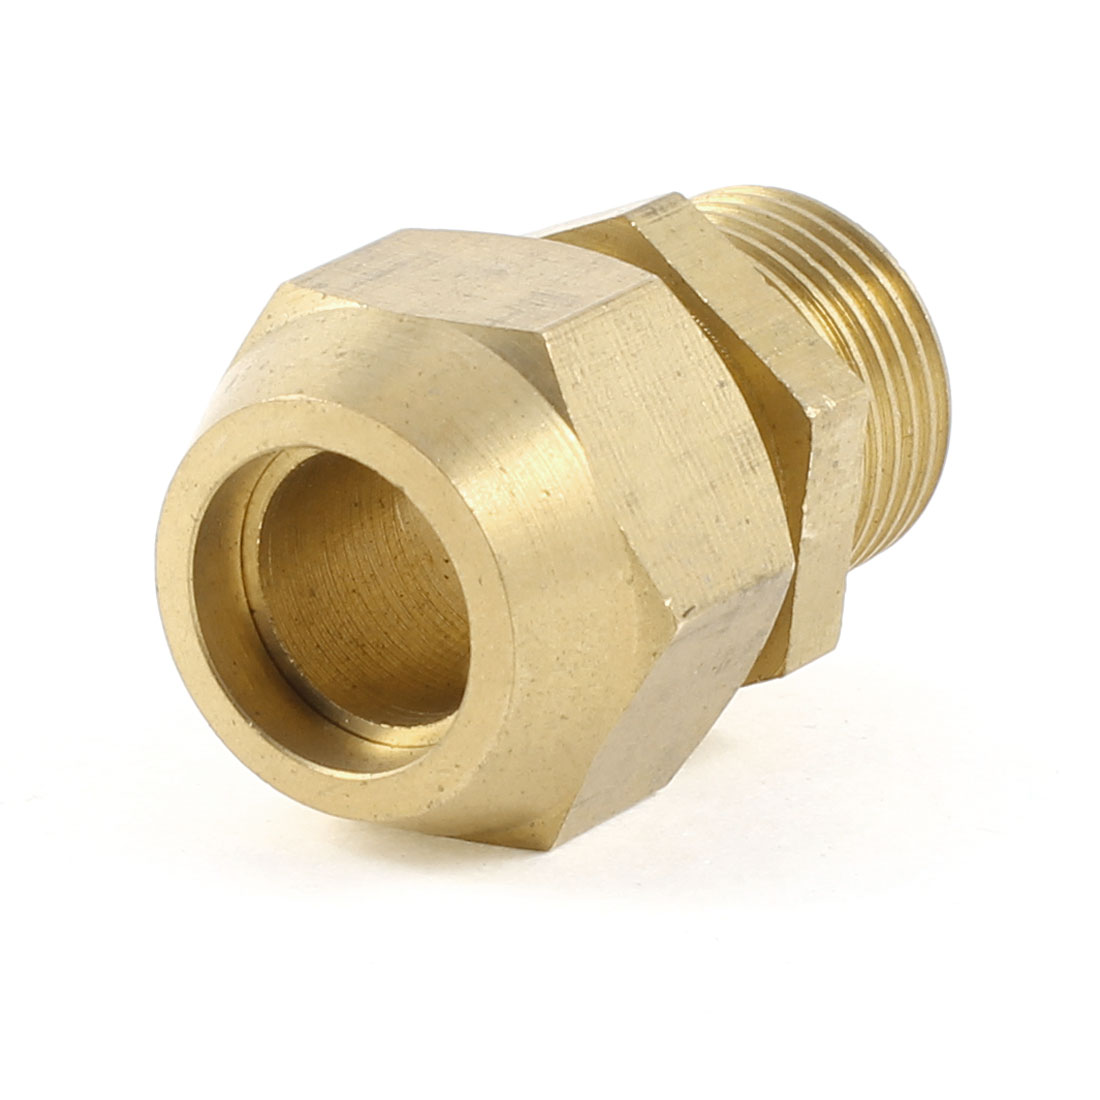 "10mm x 1/4"" PT Male Threaded Metal Adapter Hose Quick Joint Connector Gold Tone"